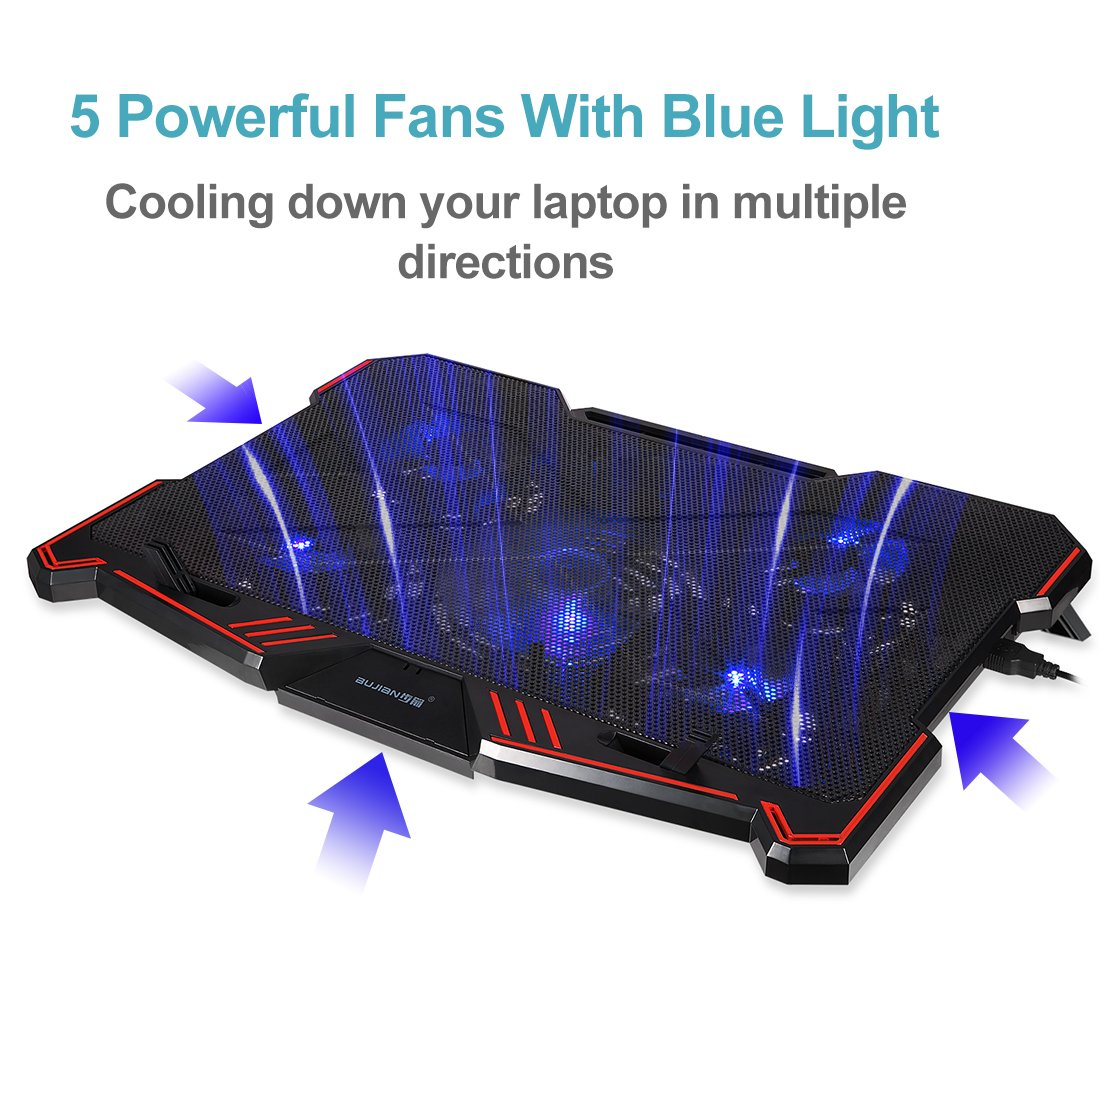 Laptop Cooling Pad BUJIAN 5 Ultra Quiet Fans and Red Led Lights with 13 Wind Speed (2600-5000RPM) and Ultra-Slim and Skid Proof Design for 12-15.6 Inch Laptop (S-X5) by BUJIAN (Image #2)